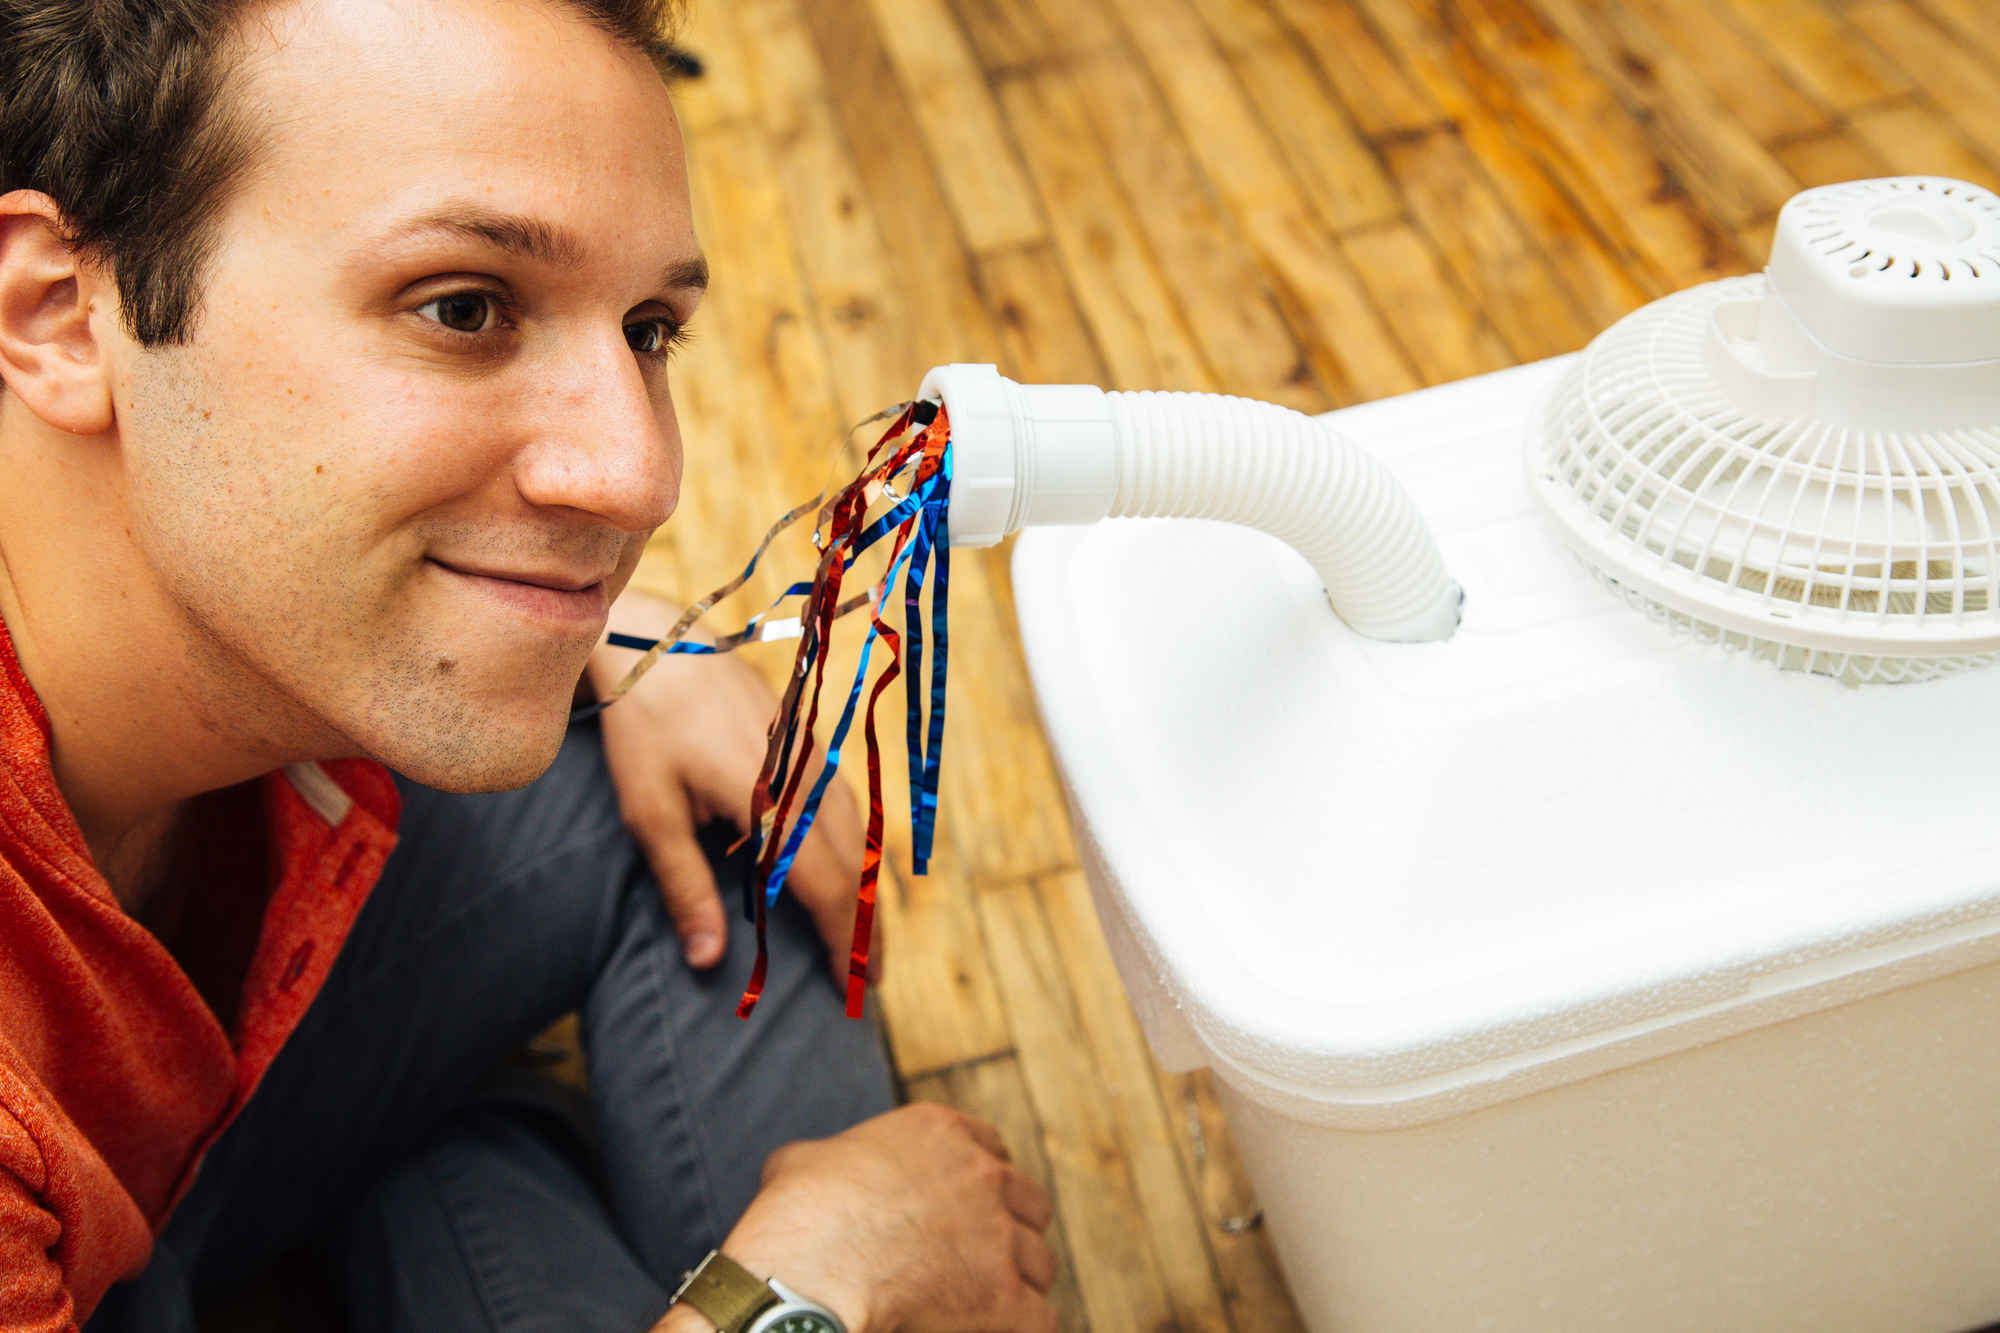 How To Make A Diy Air Conditioner For Under 20 Huffpost